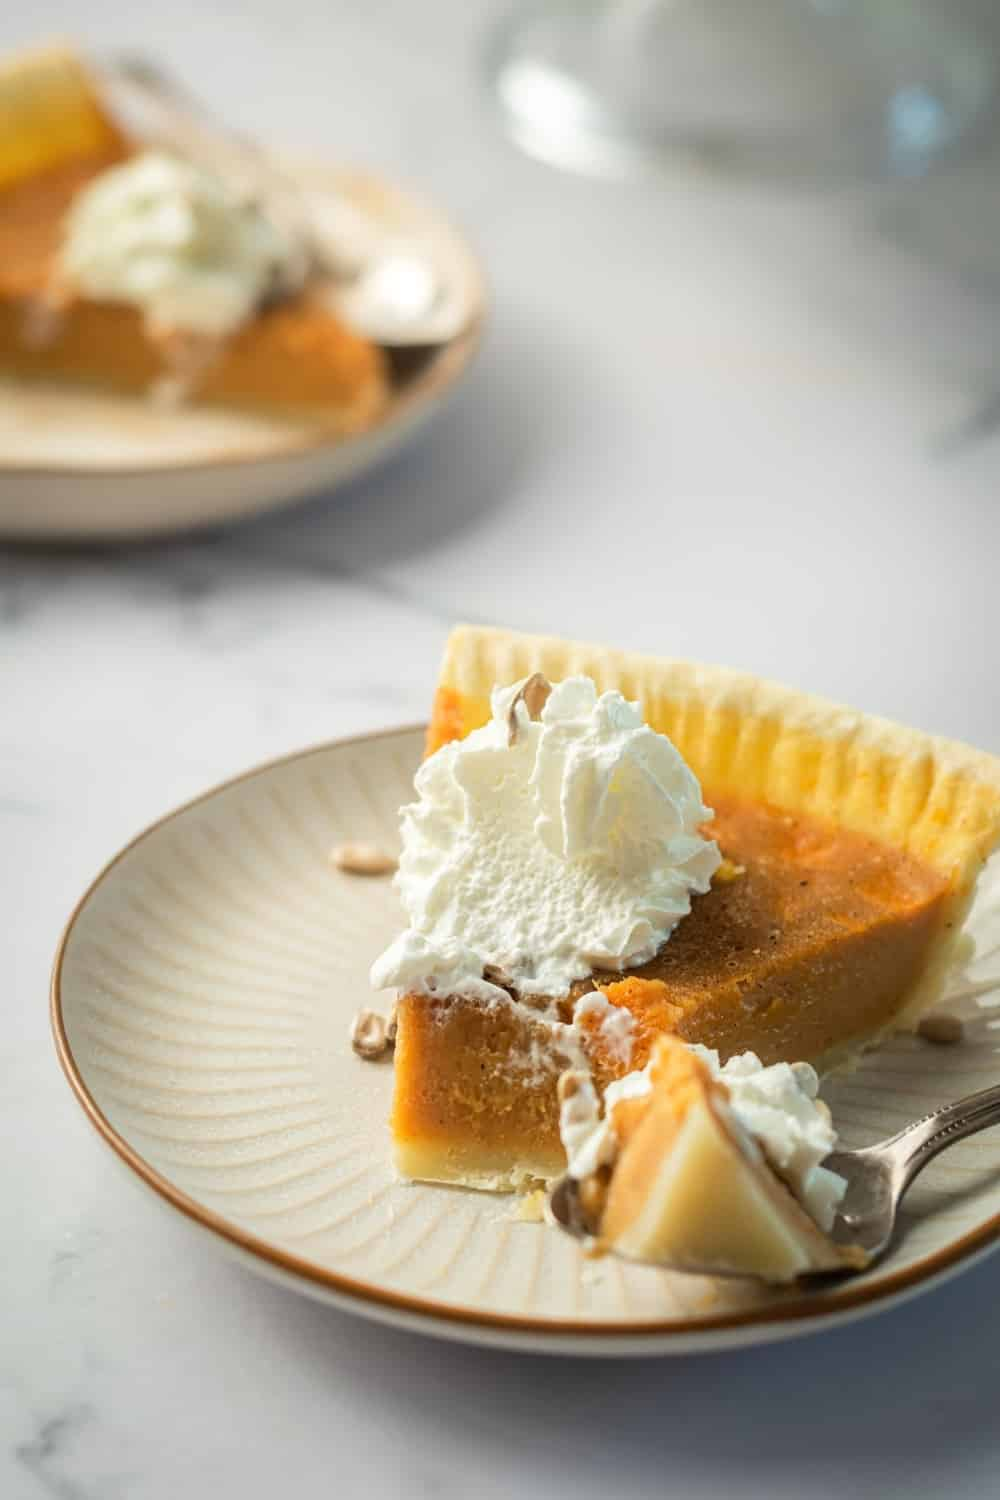 A slice of pumpkin custard pie on a white plate. In front of it on the plate is a spoon with the front piece of the pumpkin pie on it.